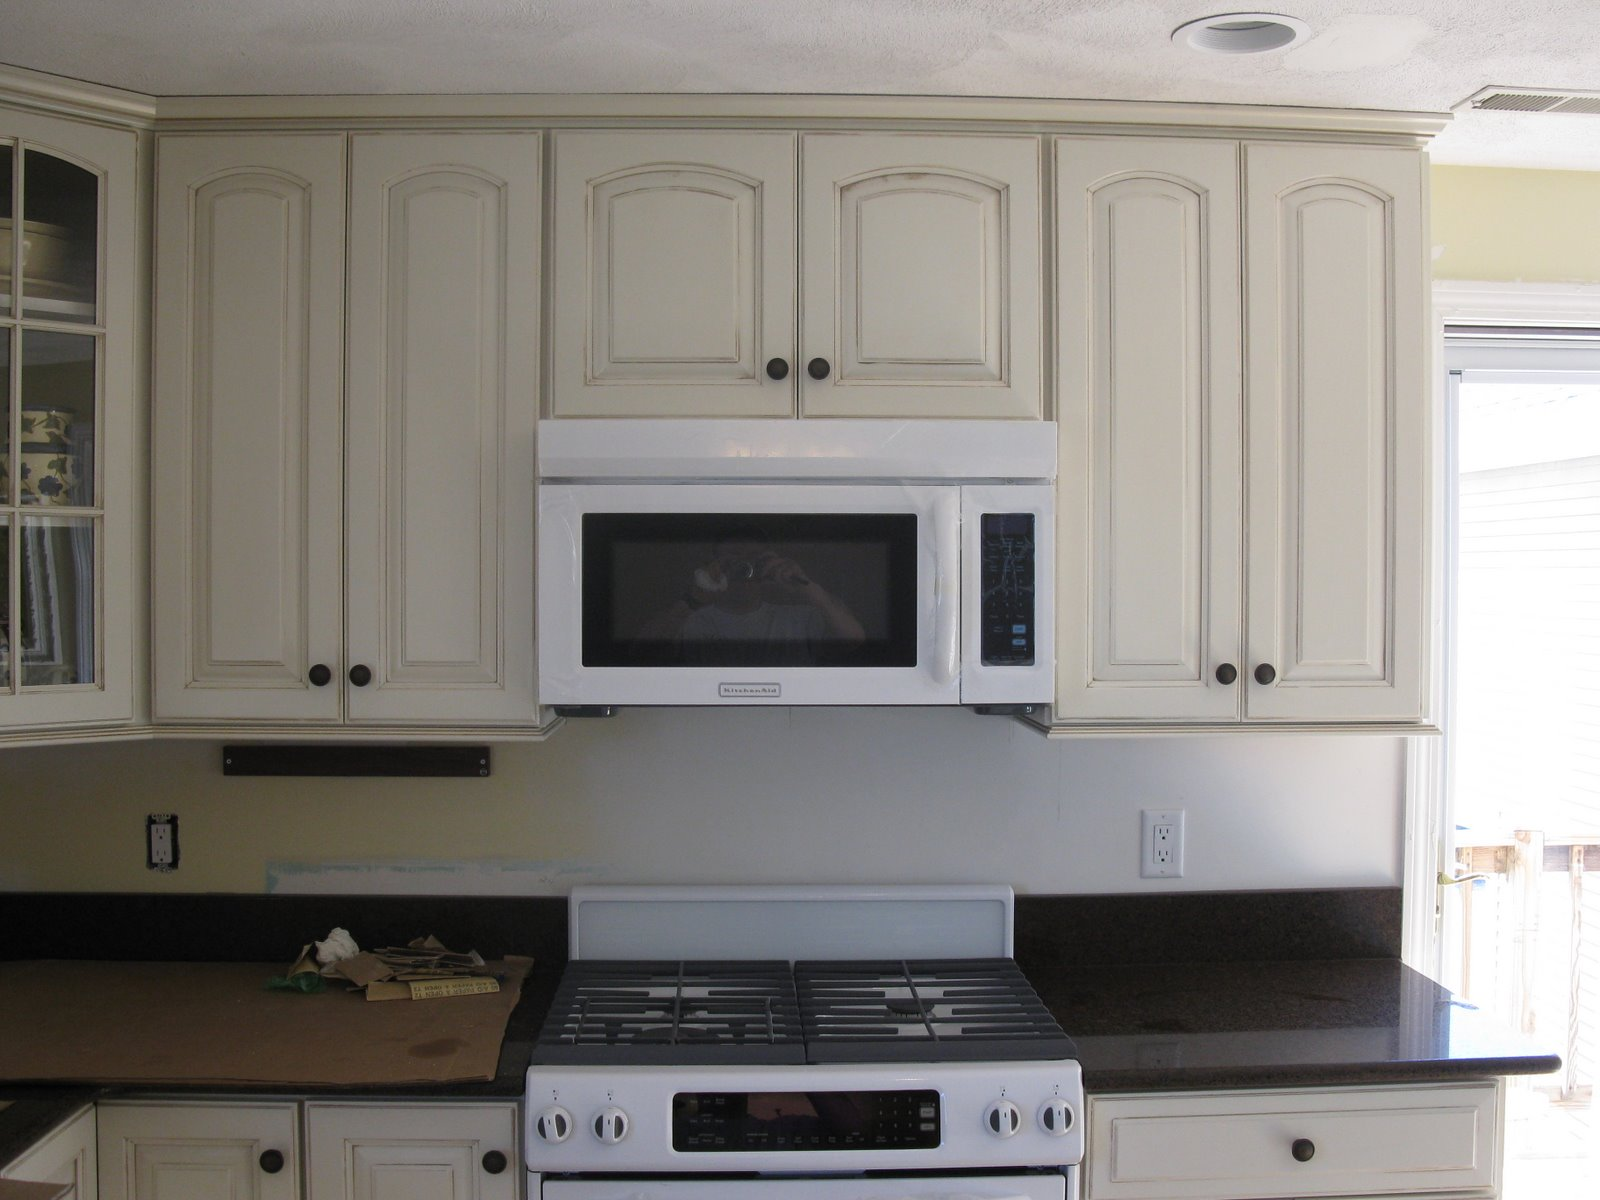 Under Cabinet Mount Microwave Ovens Two Birds Home